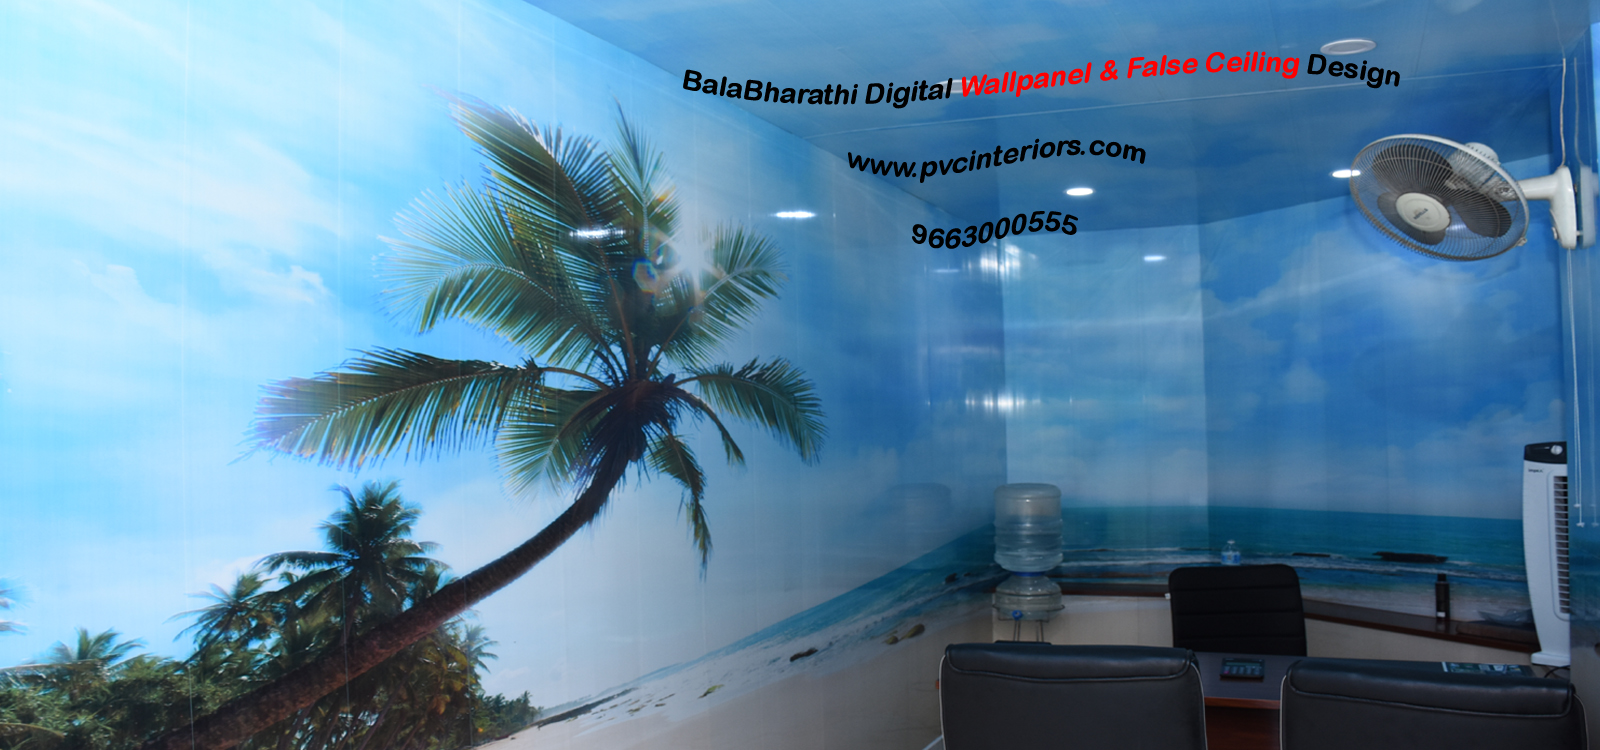 digital wallpanel design